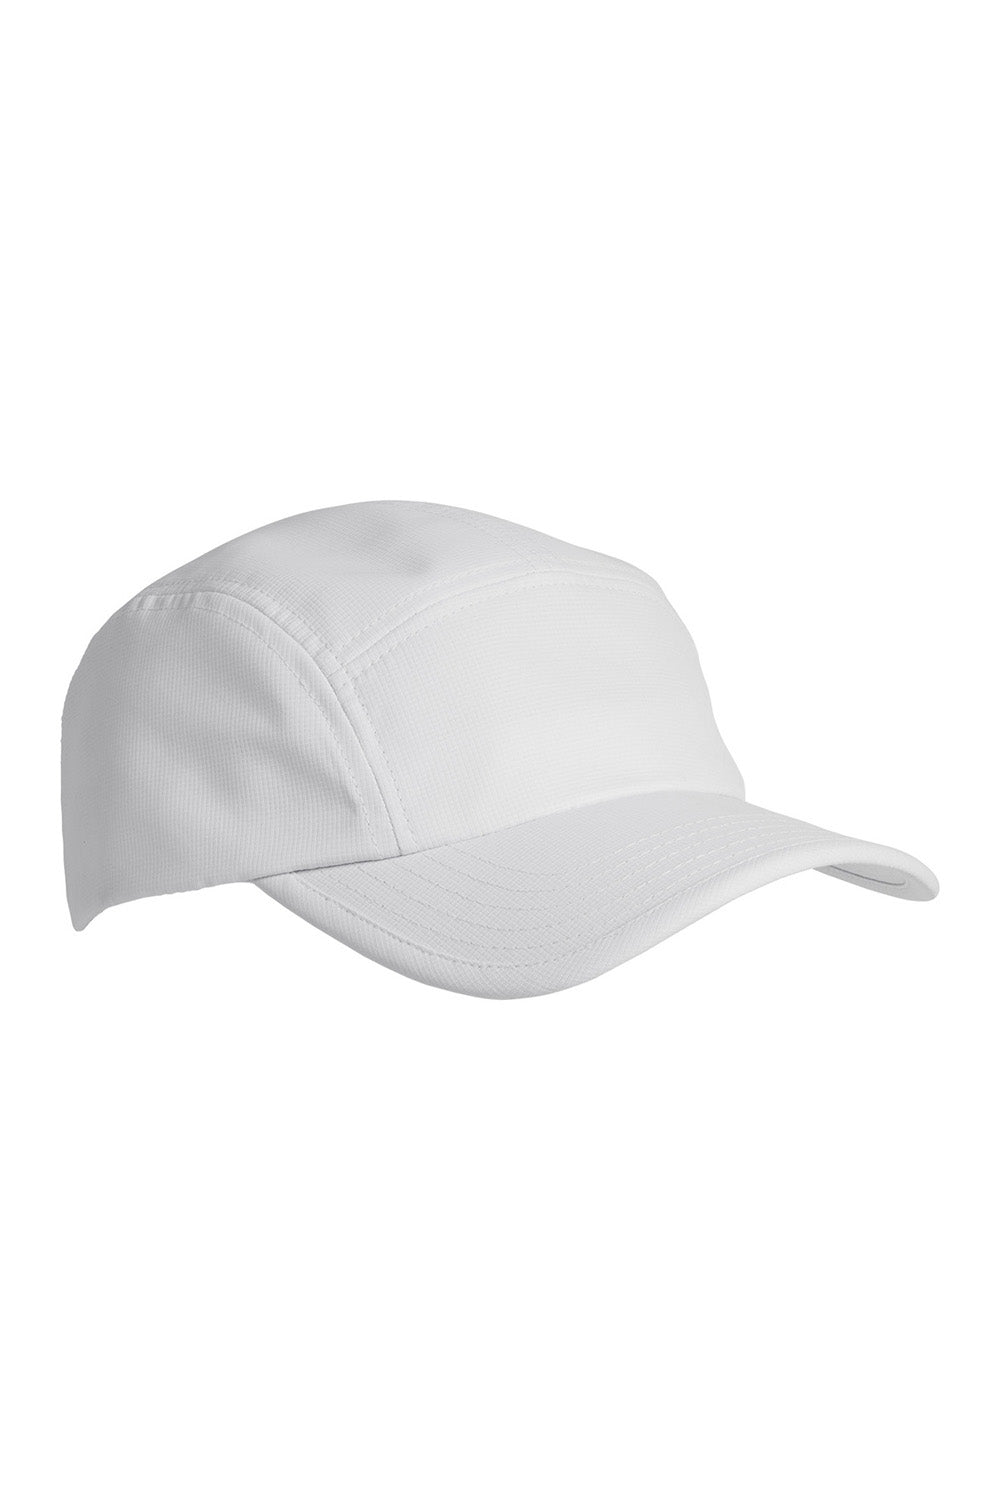 Big Accessories BA603 Mens Pearl Performance Adjustable Hat White Front